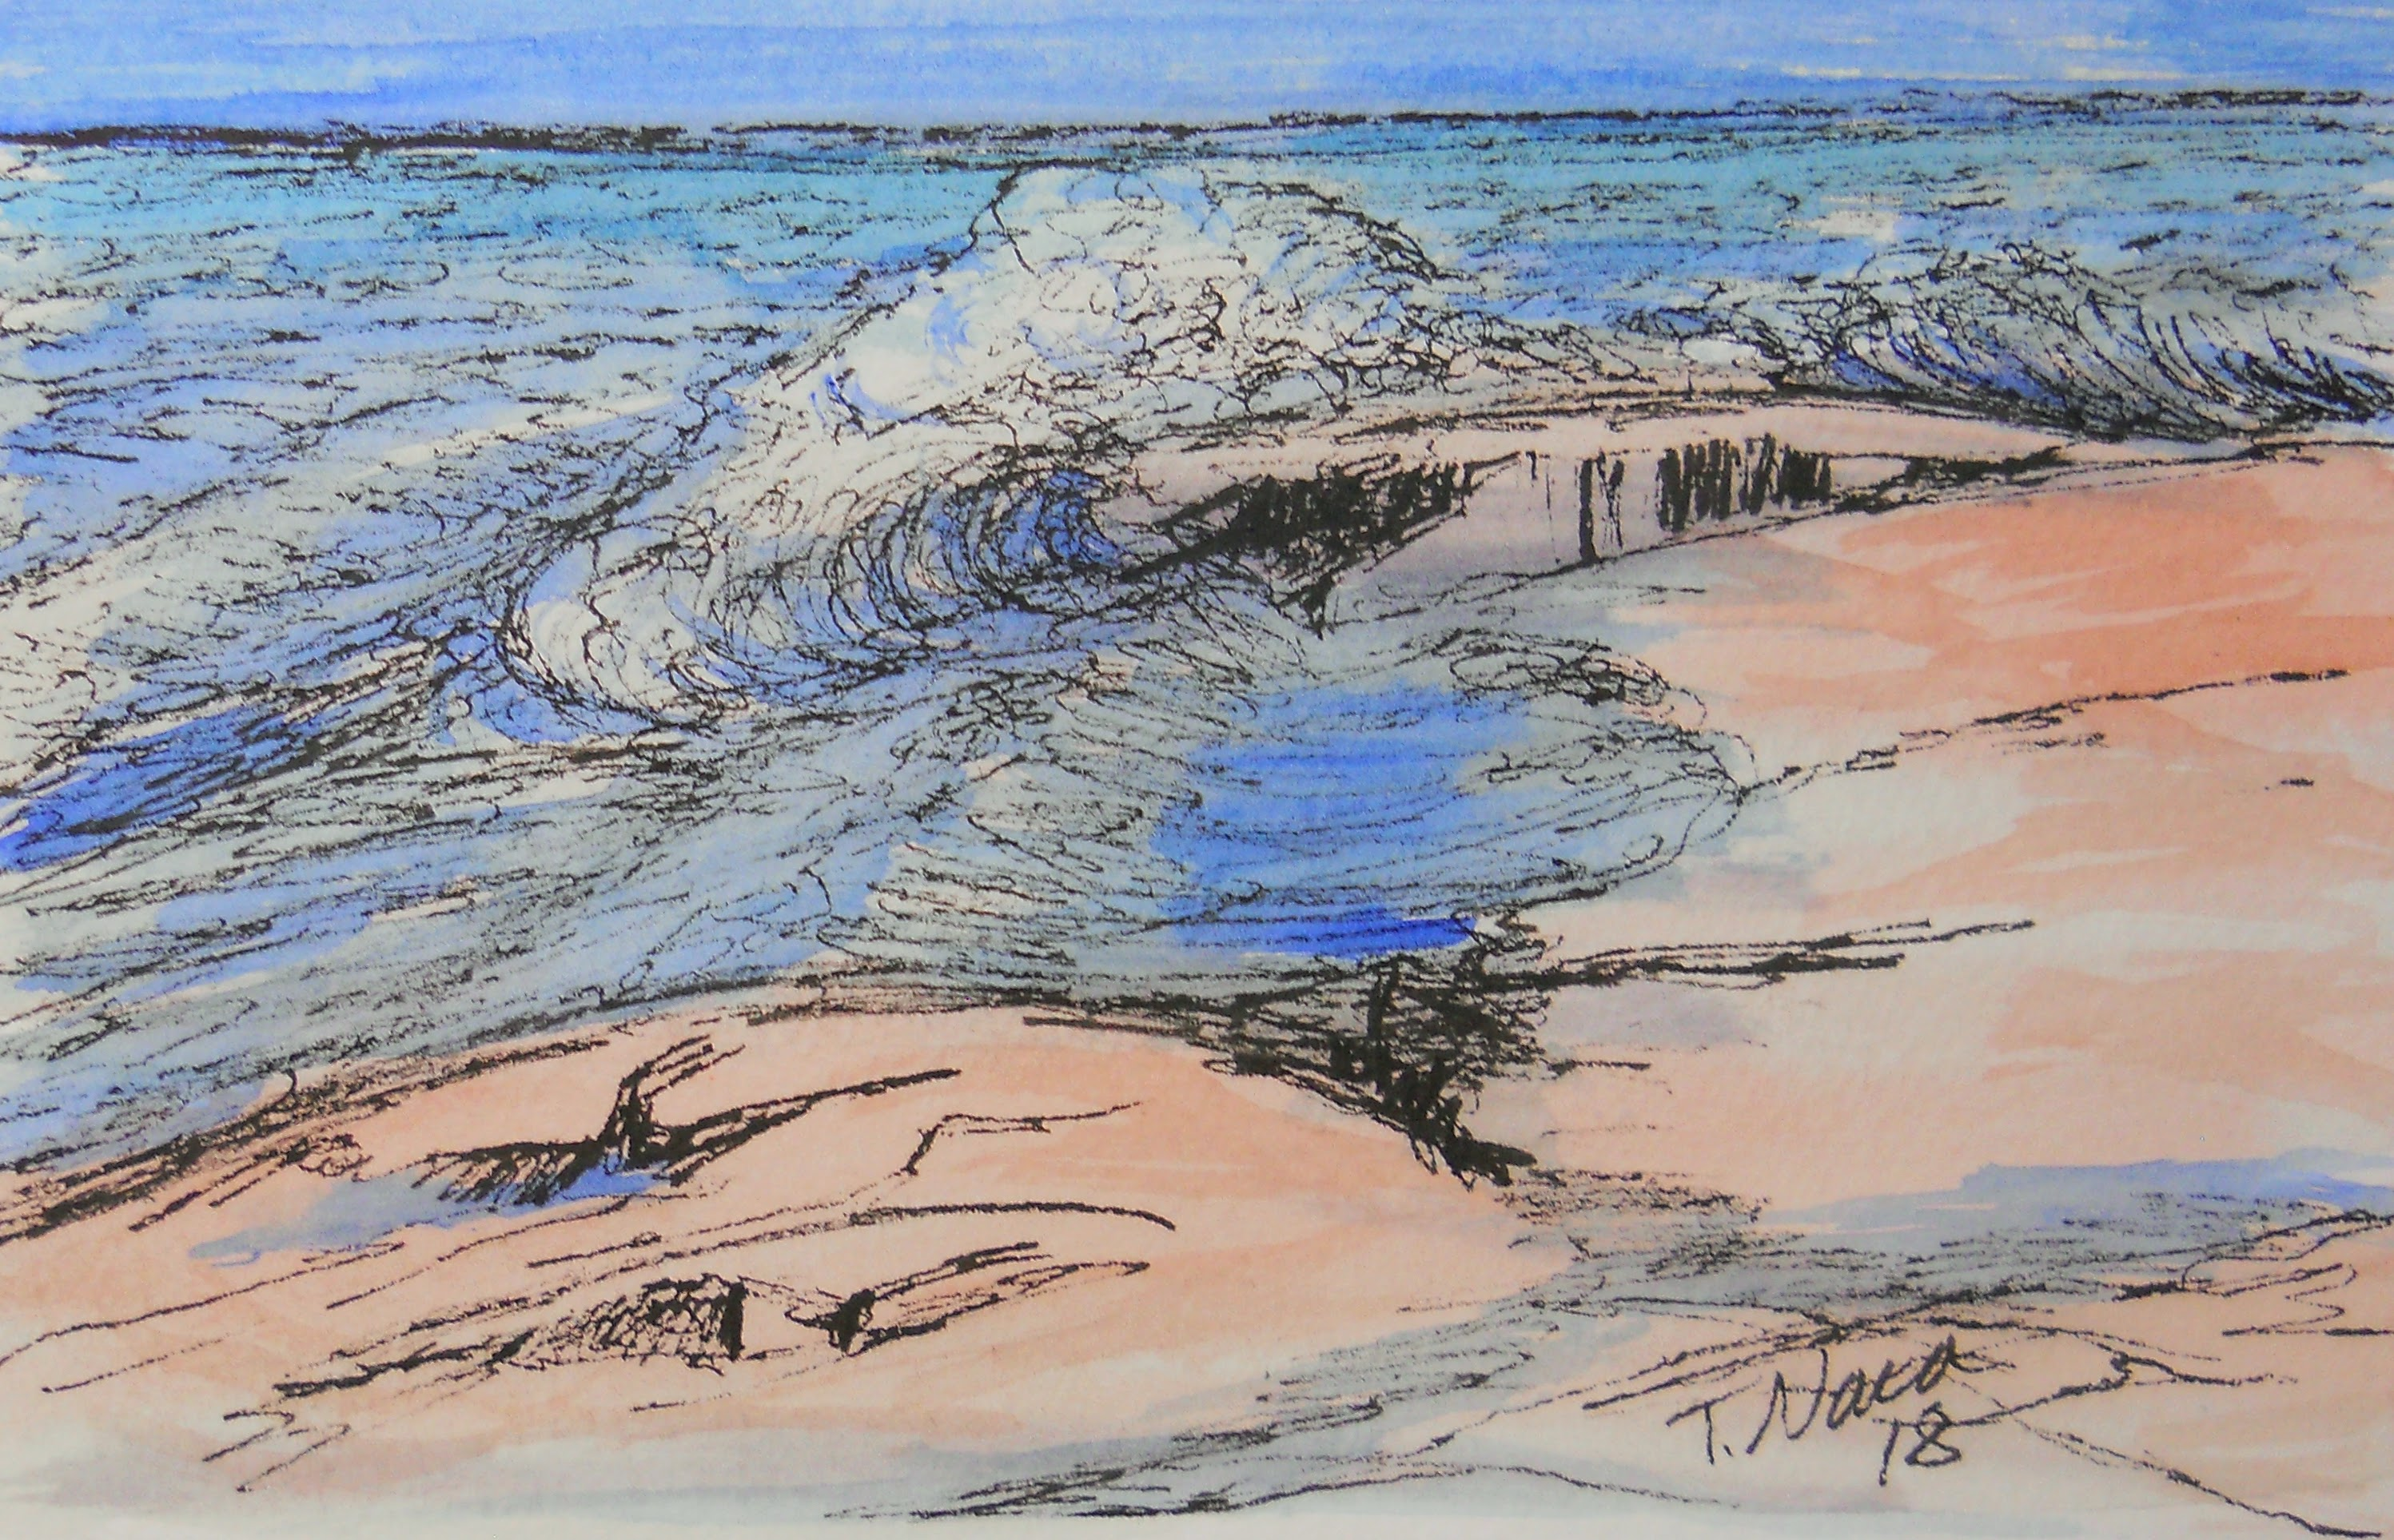 Ink drawing with watercolor wash of waves and rocks.